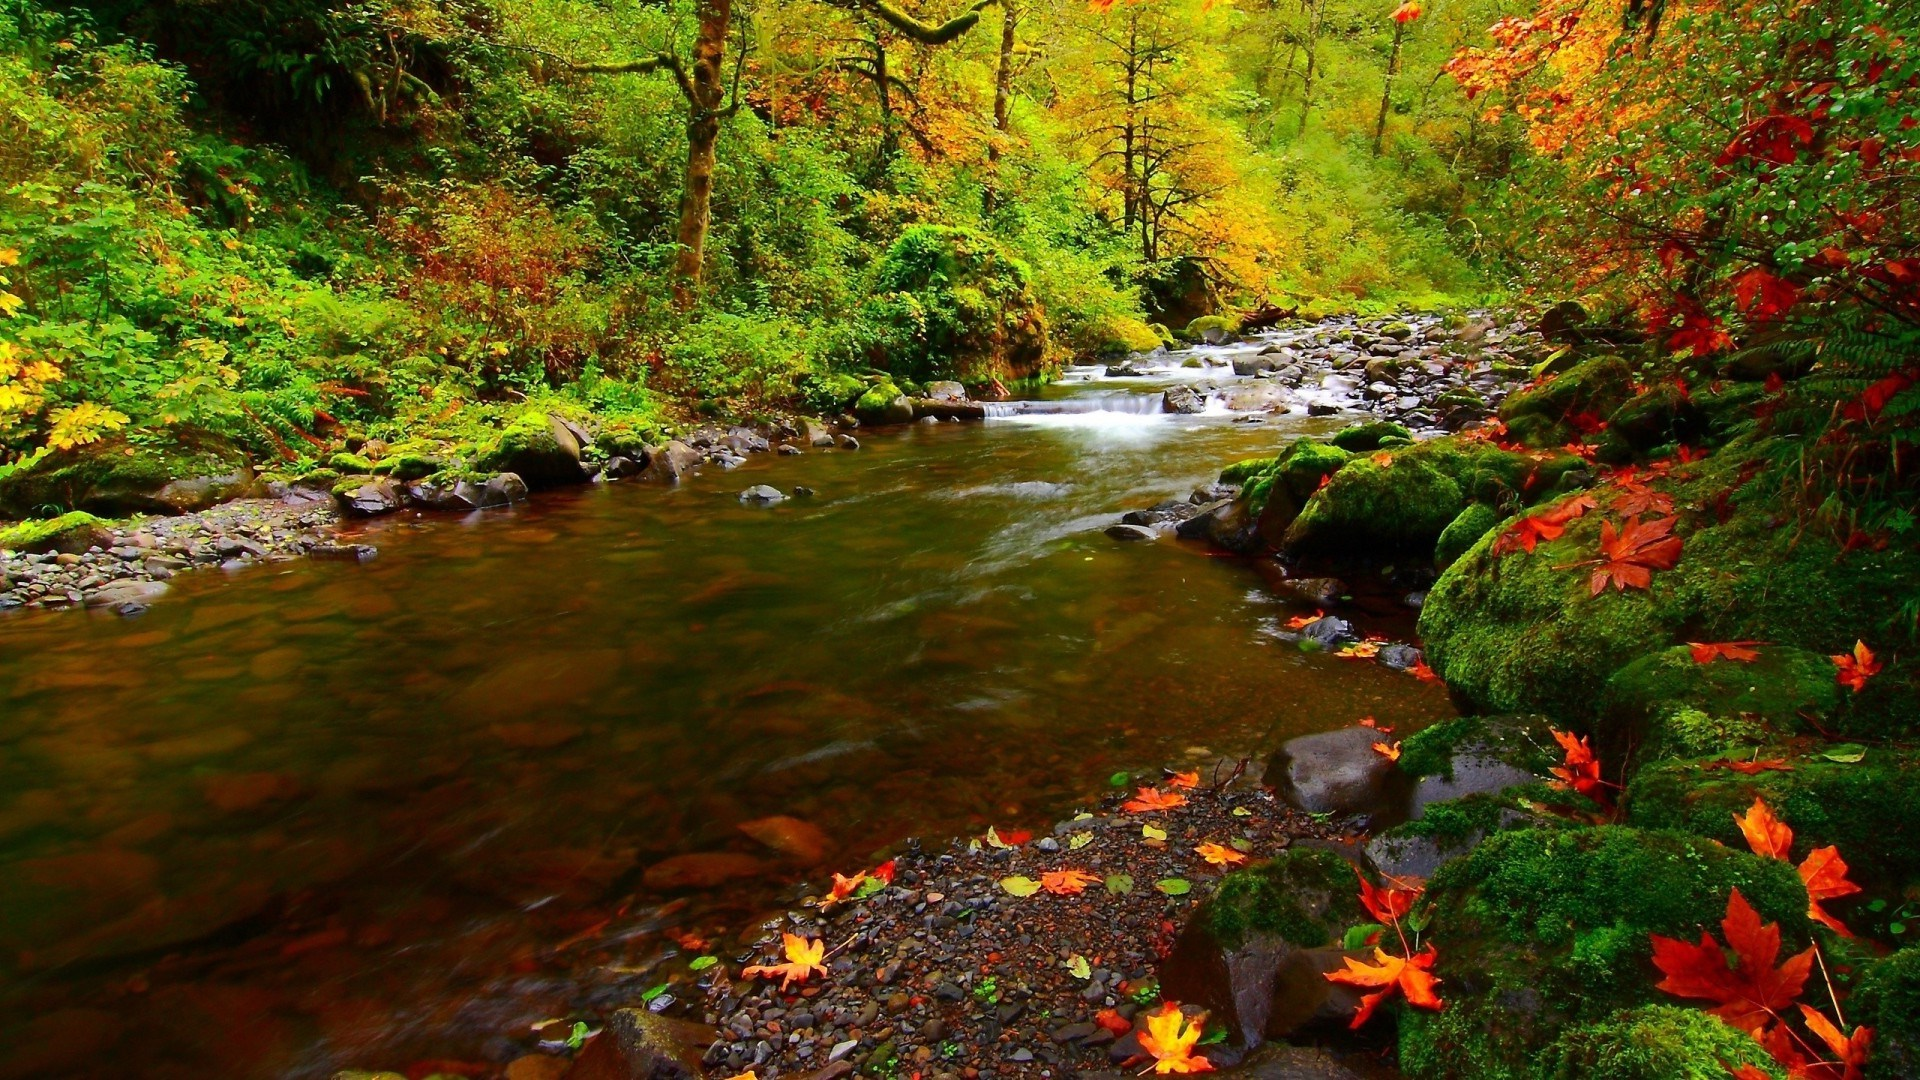 River Rocks Autumn Natural Desktop HD Wallpapers   Large 1920x1080